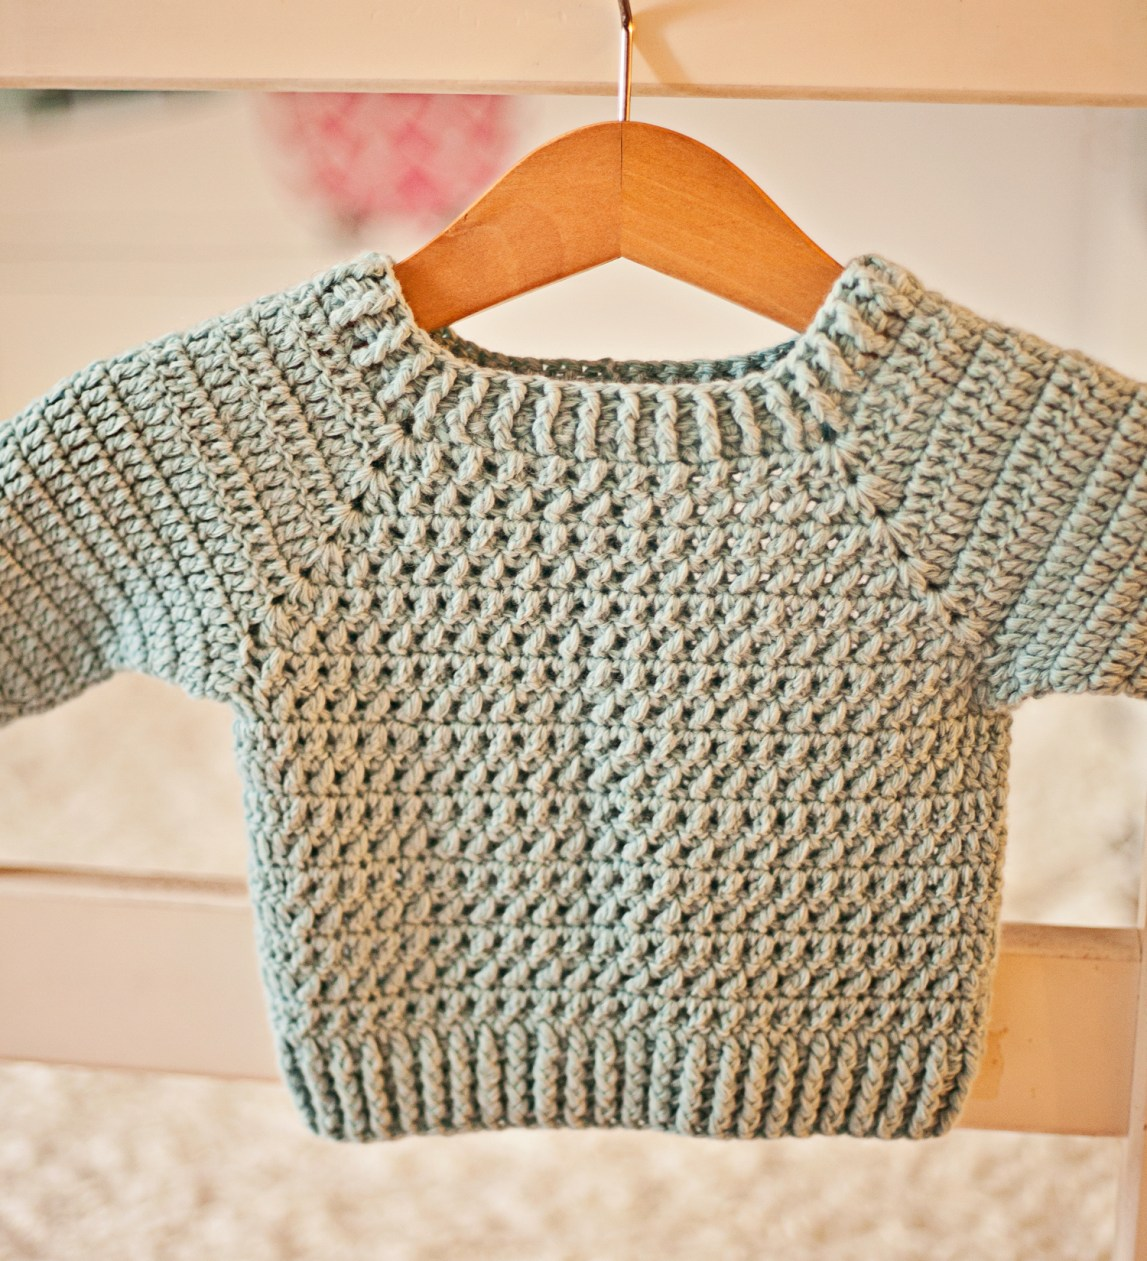 River Coast Sweater, crochet pattern by Mon Petit Violon. www.monpetitviolon.etsy.com